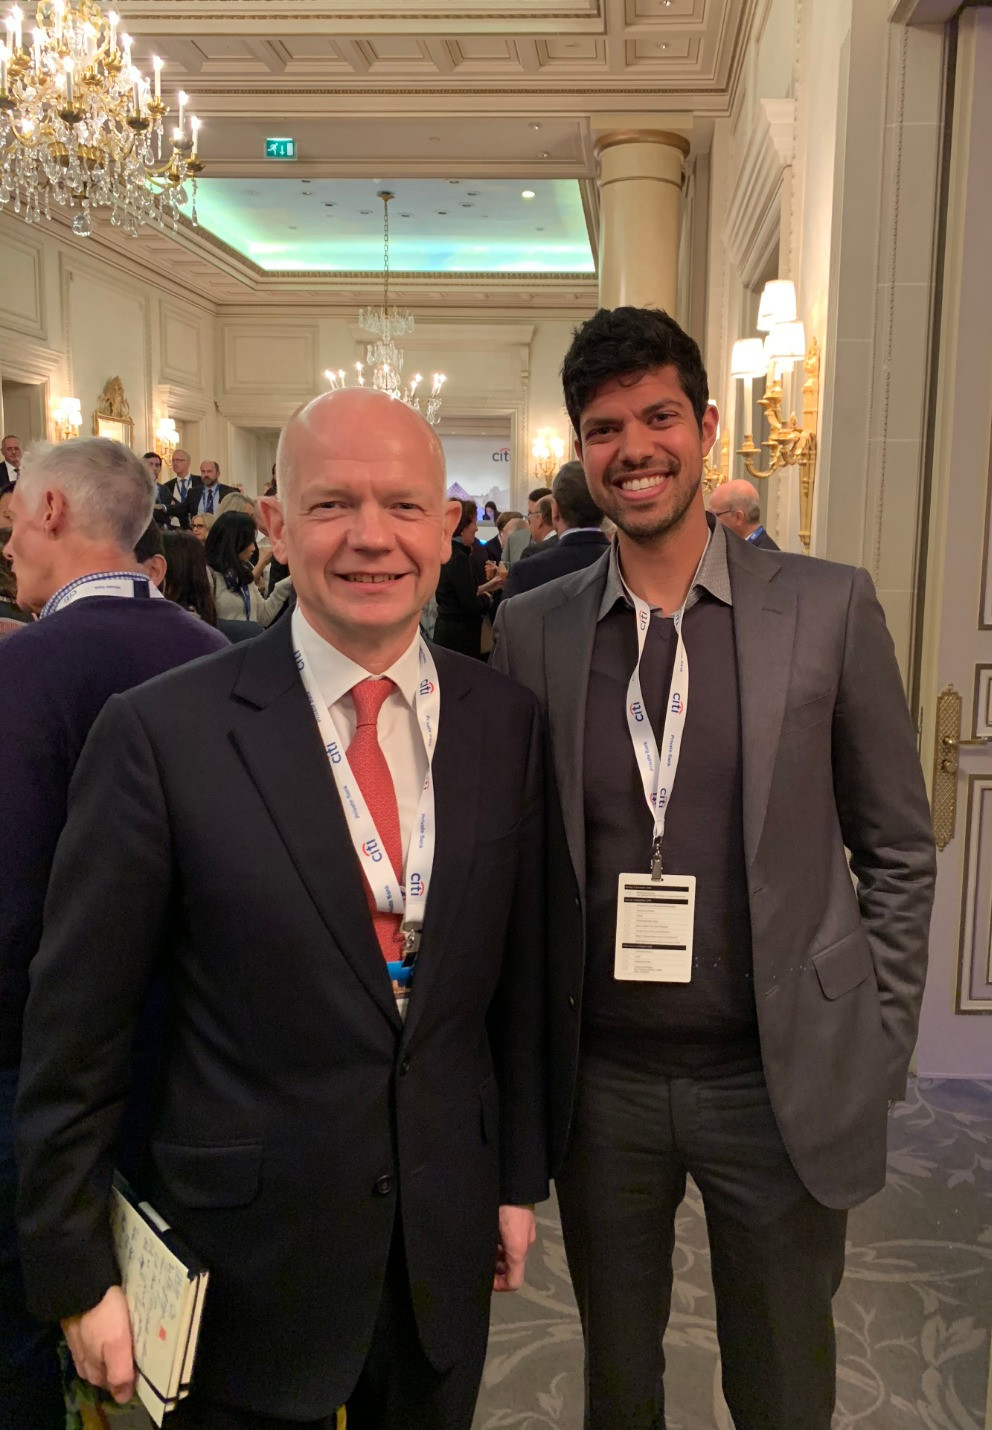 Suraj K. Gupta with Lord William Hague, The Rt Hon. the Lord Hague of Richmond